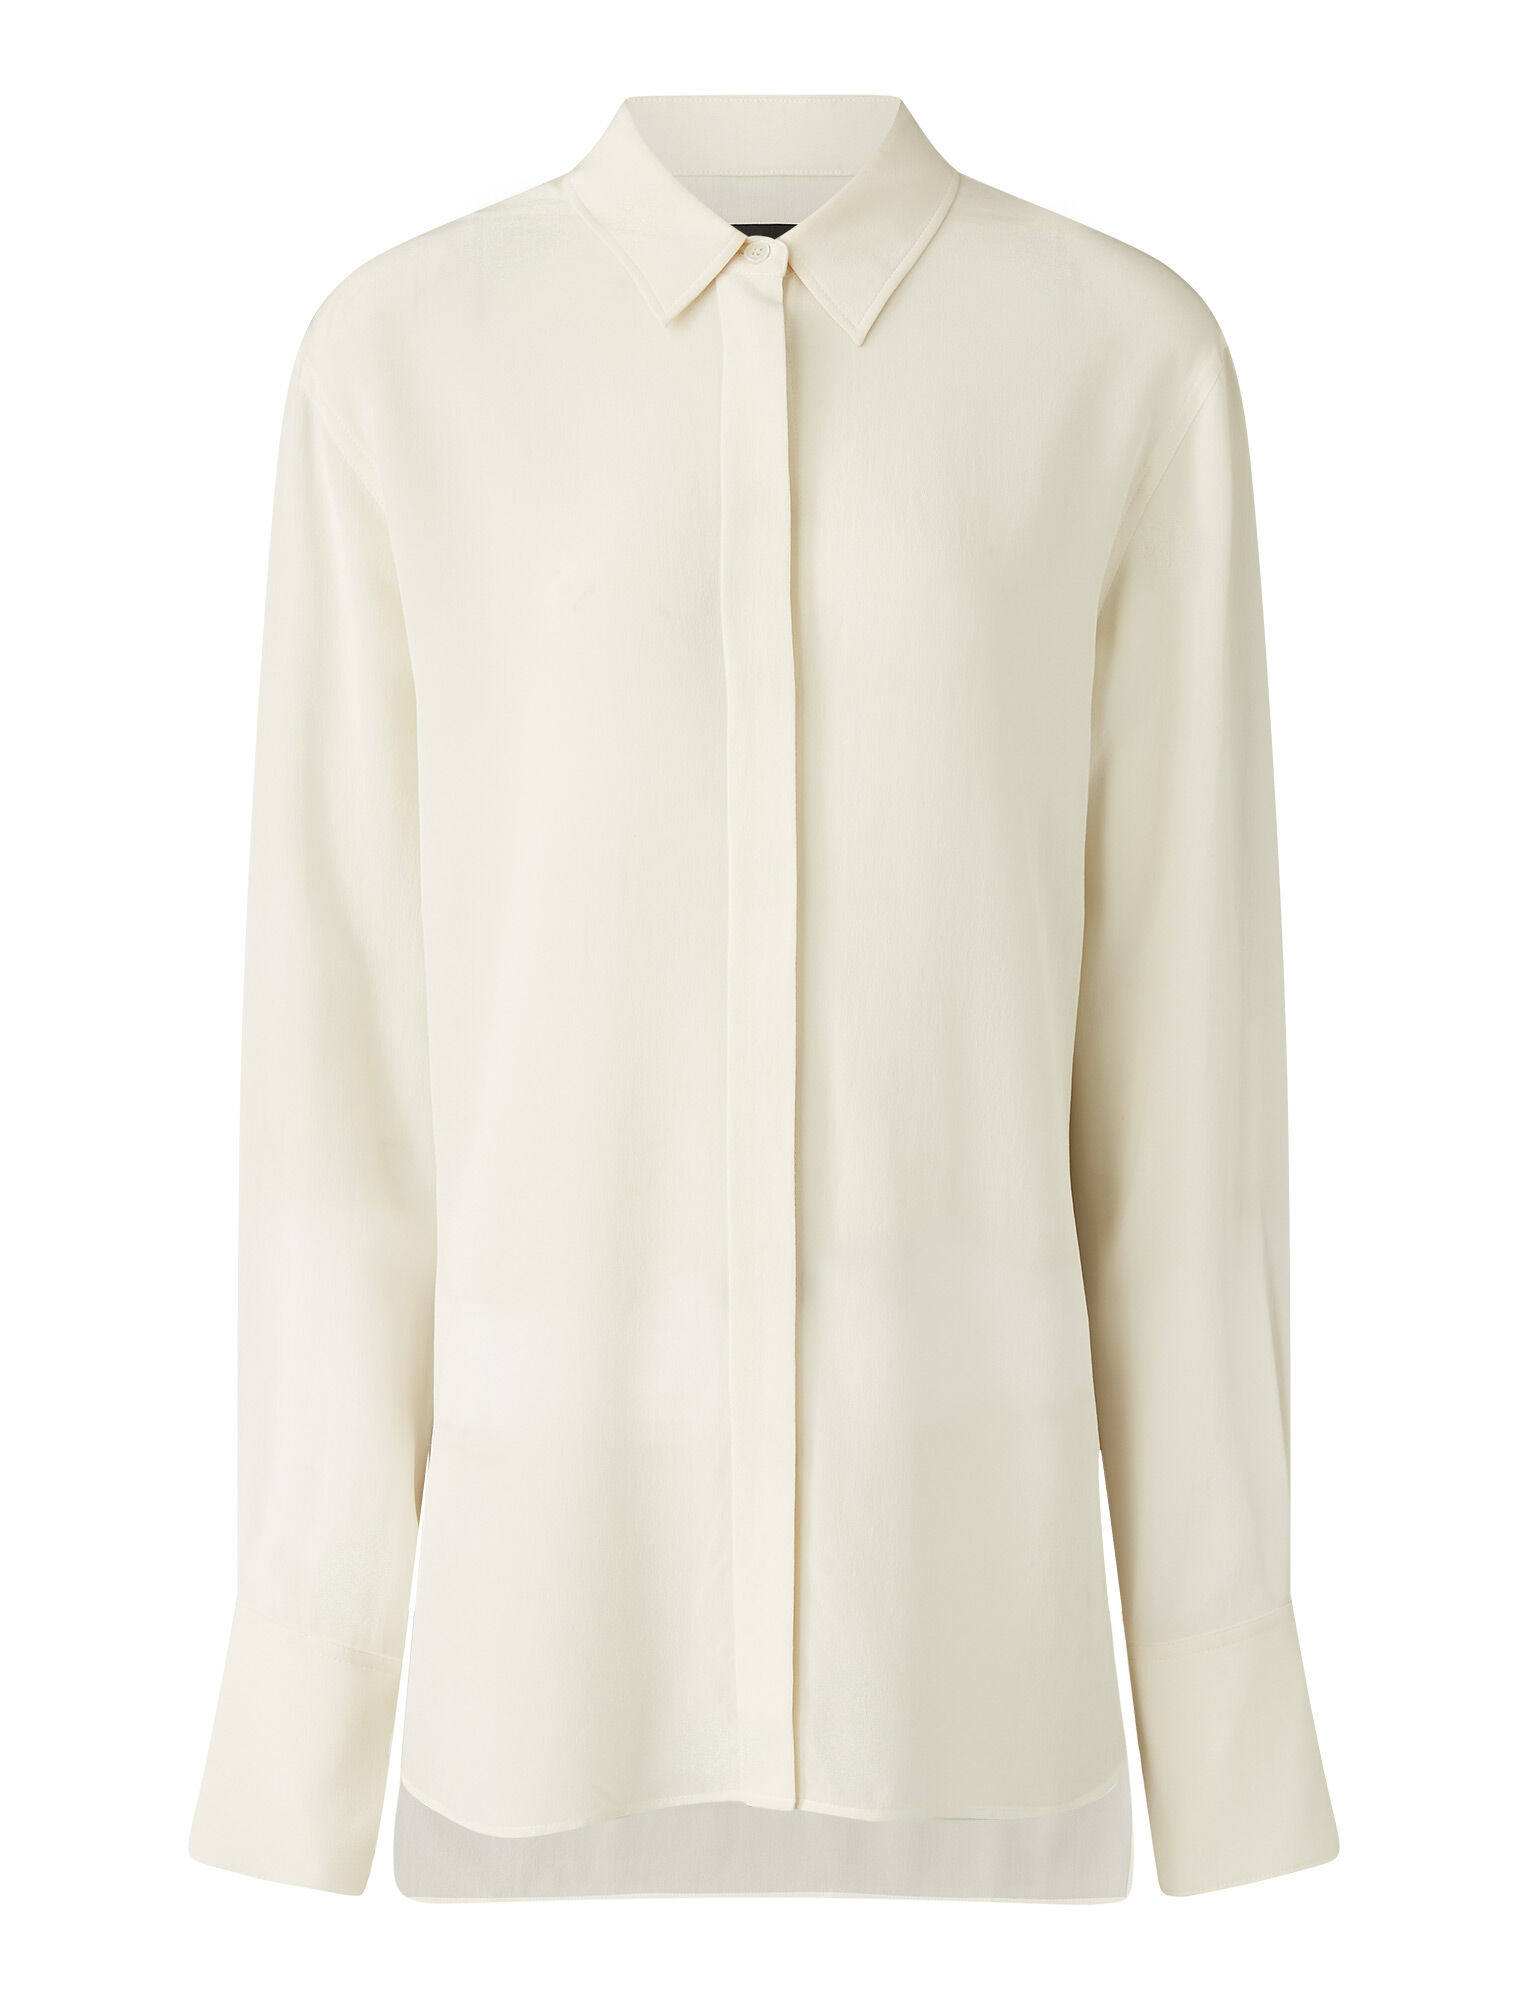 Joseph, Bold Crepe De Chine Blouse, in Ivory